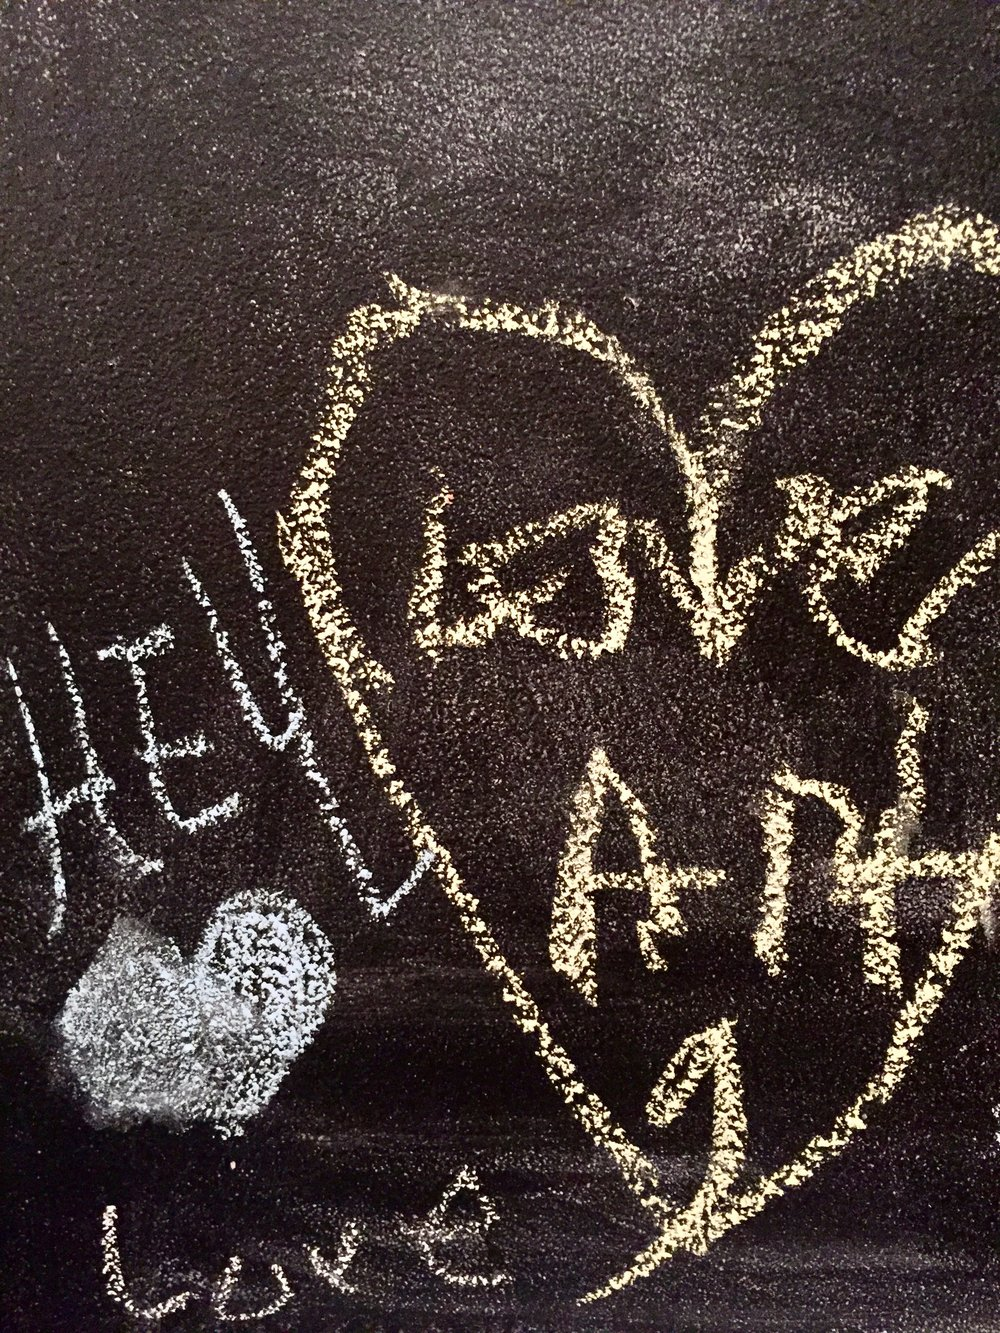 love-art-written-on-chalkboard 2.jpg